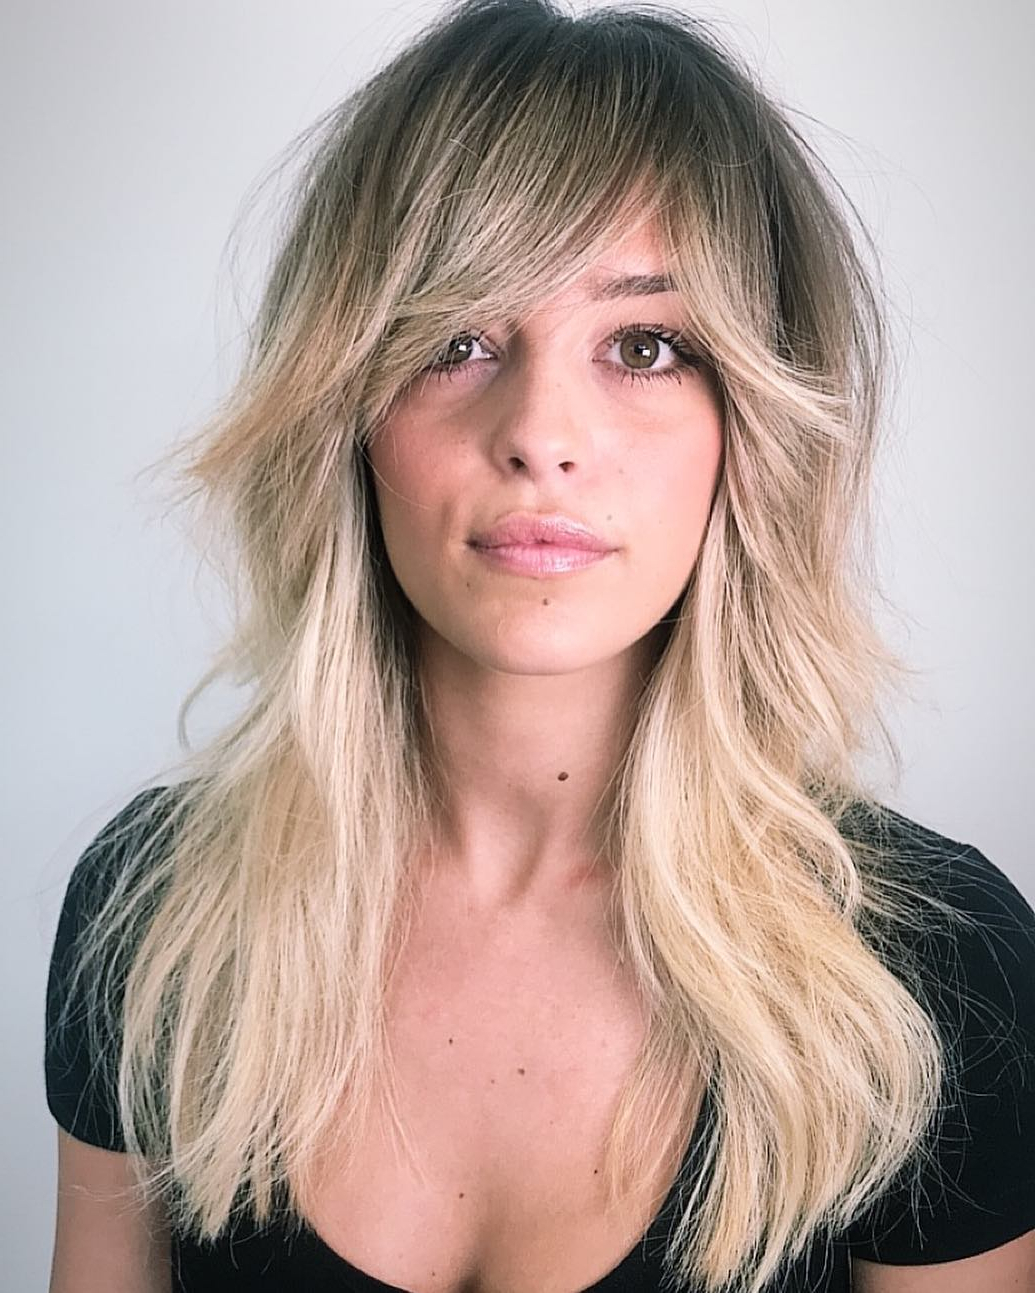 The Most Instagrammable Hairstyles With Bangs In 2019 Inside Shaggy Haircuts With Bangs And Longer Layers (View 15 of 20)